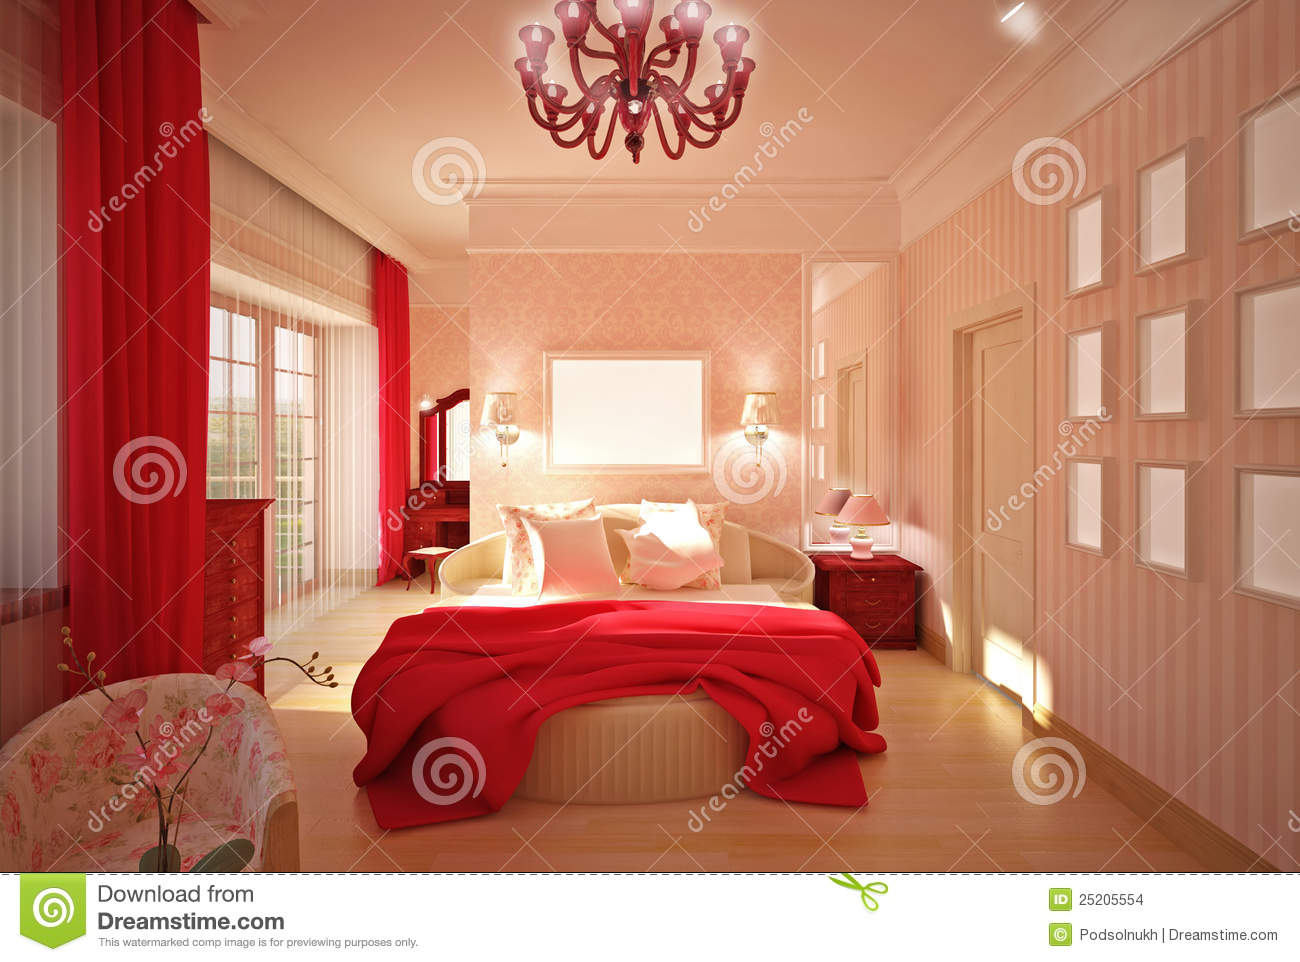 Pink Interior Design Bedroom In Pink Interior Design Stock Images - Image: 25205554